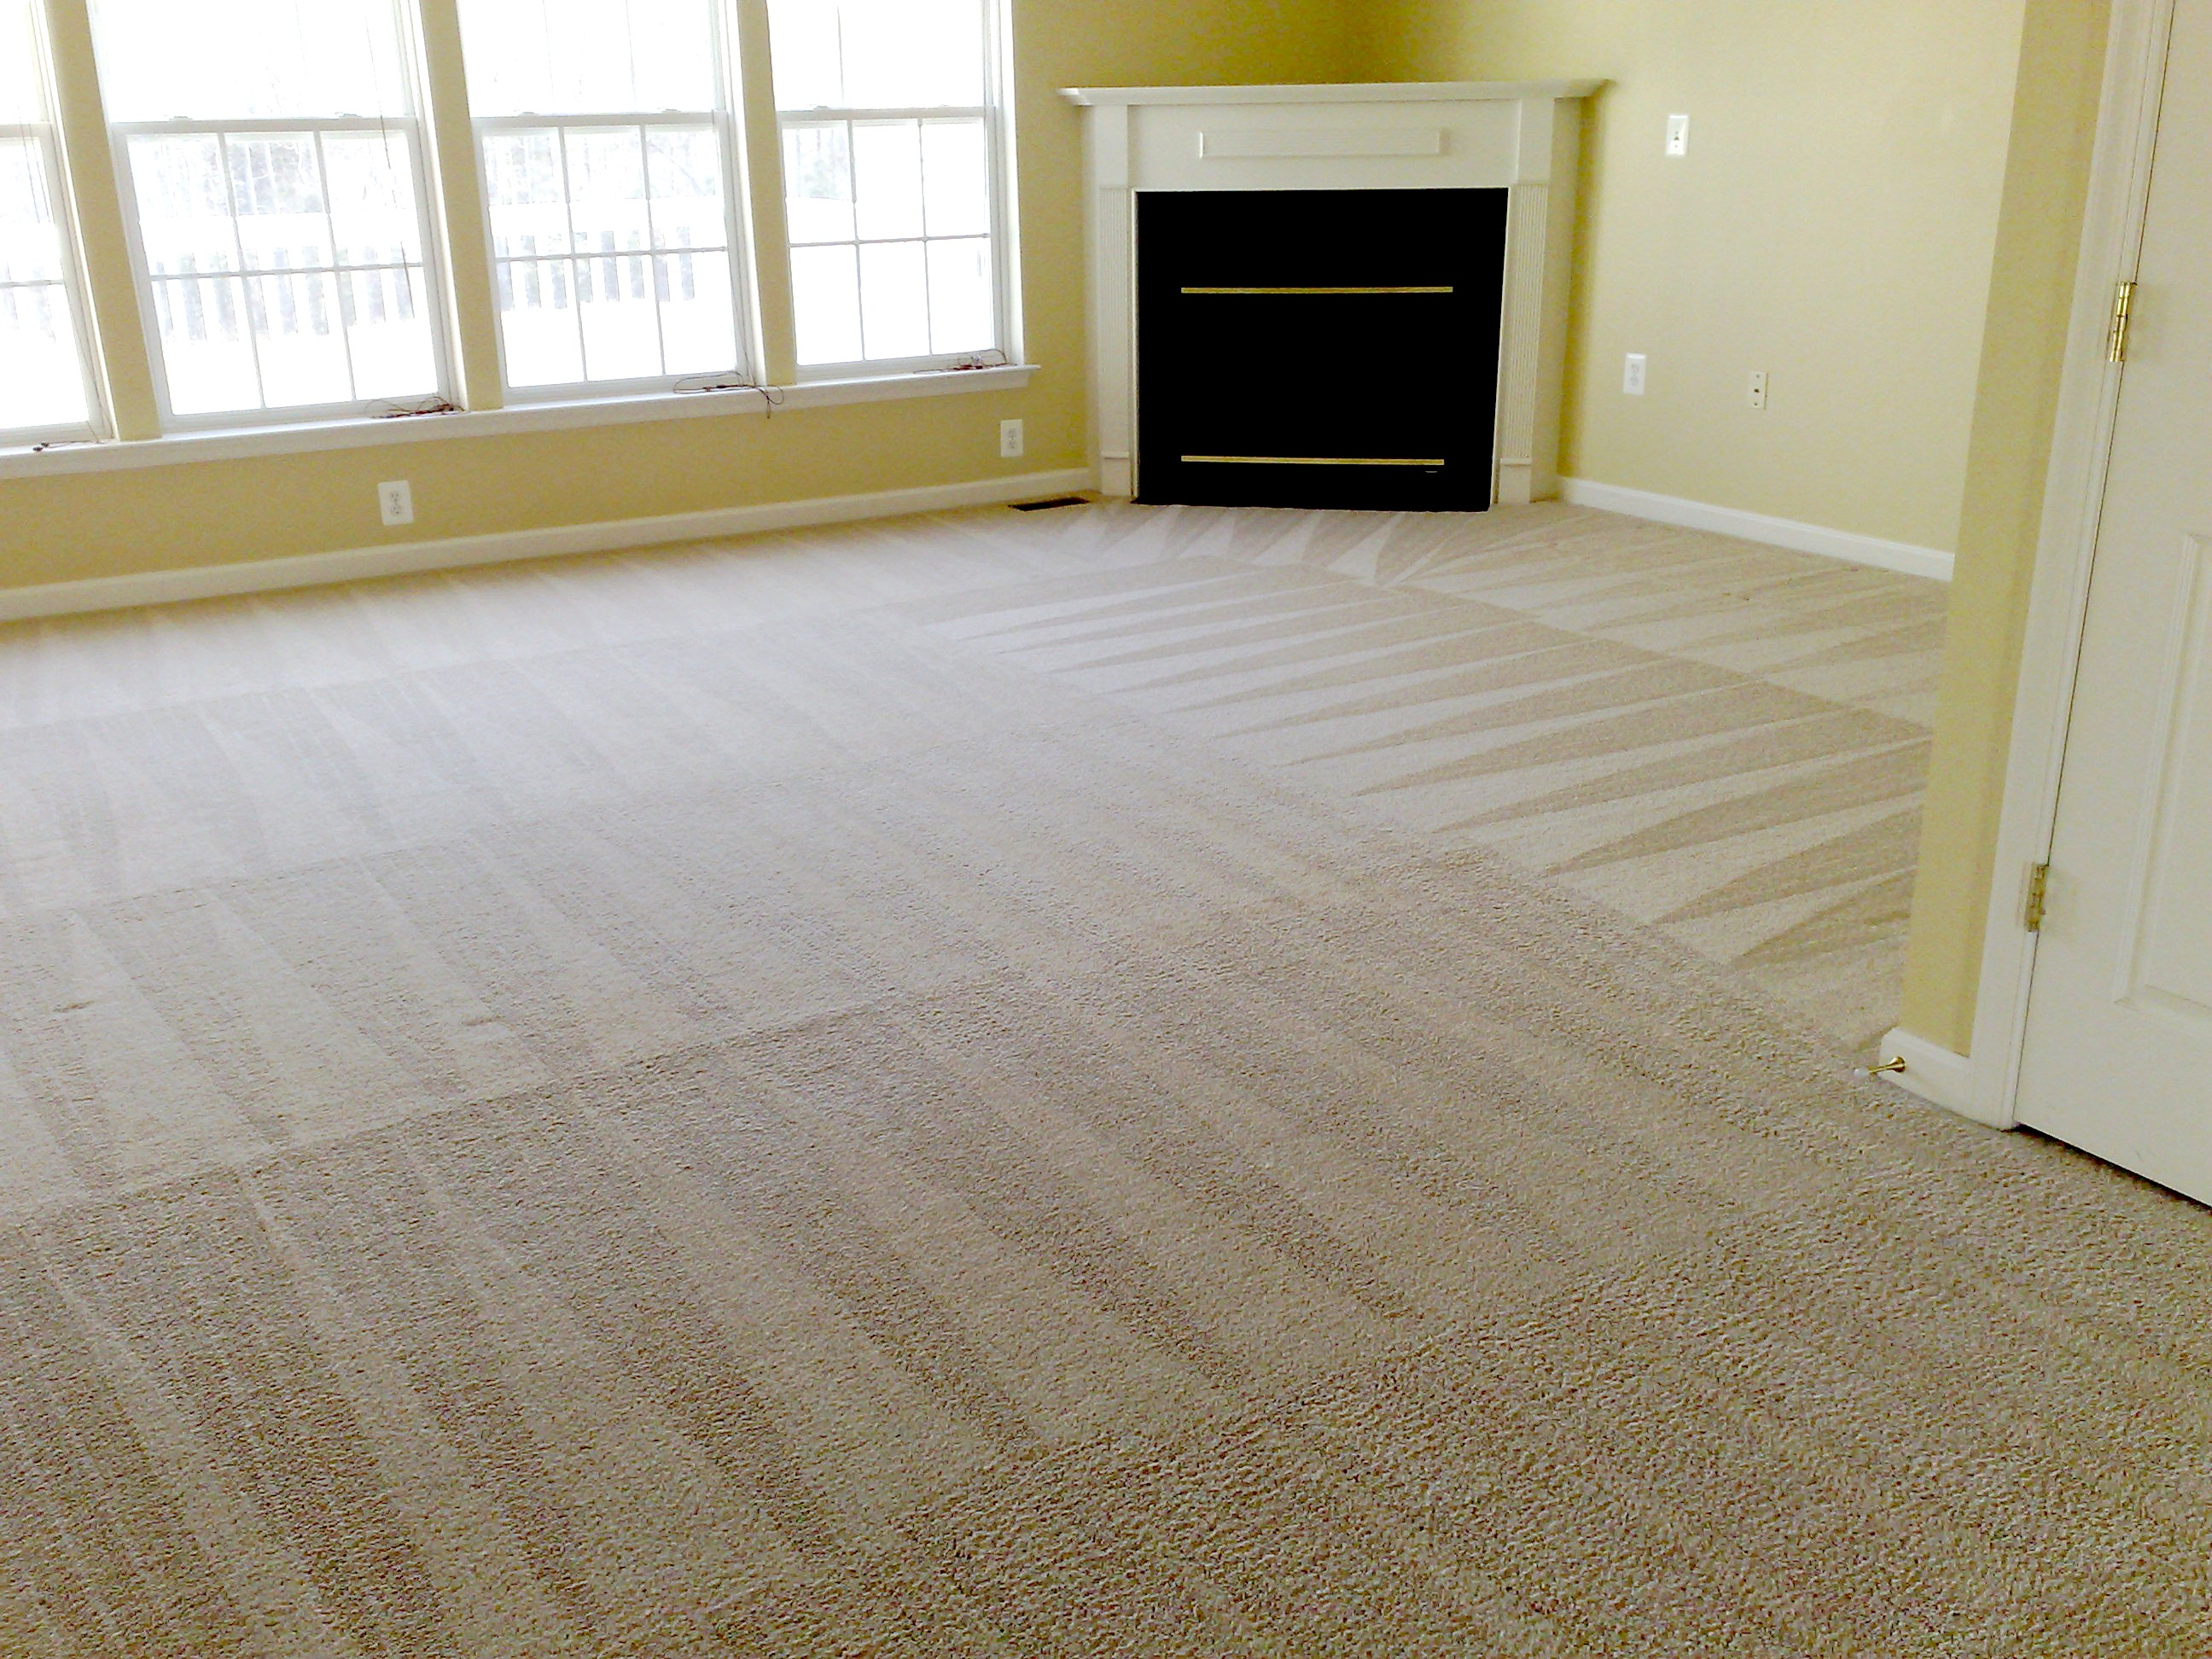 Carpet And Furniture Cleaning Exterior q's cleaning services | office cleaning | residential ser